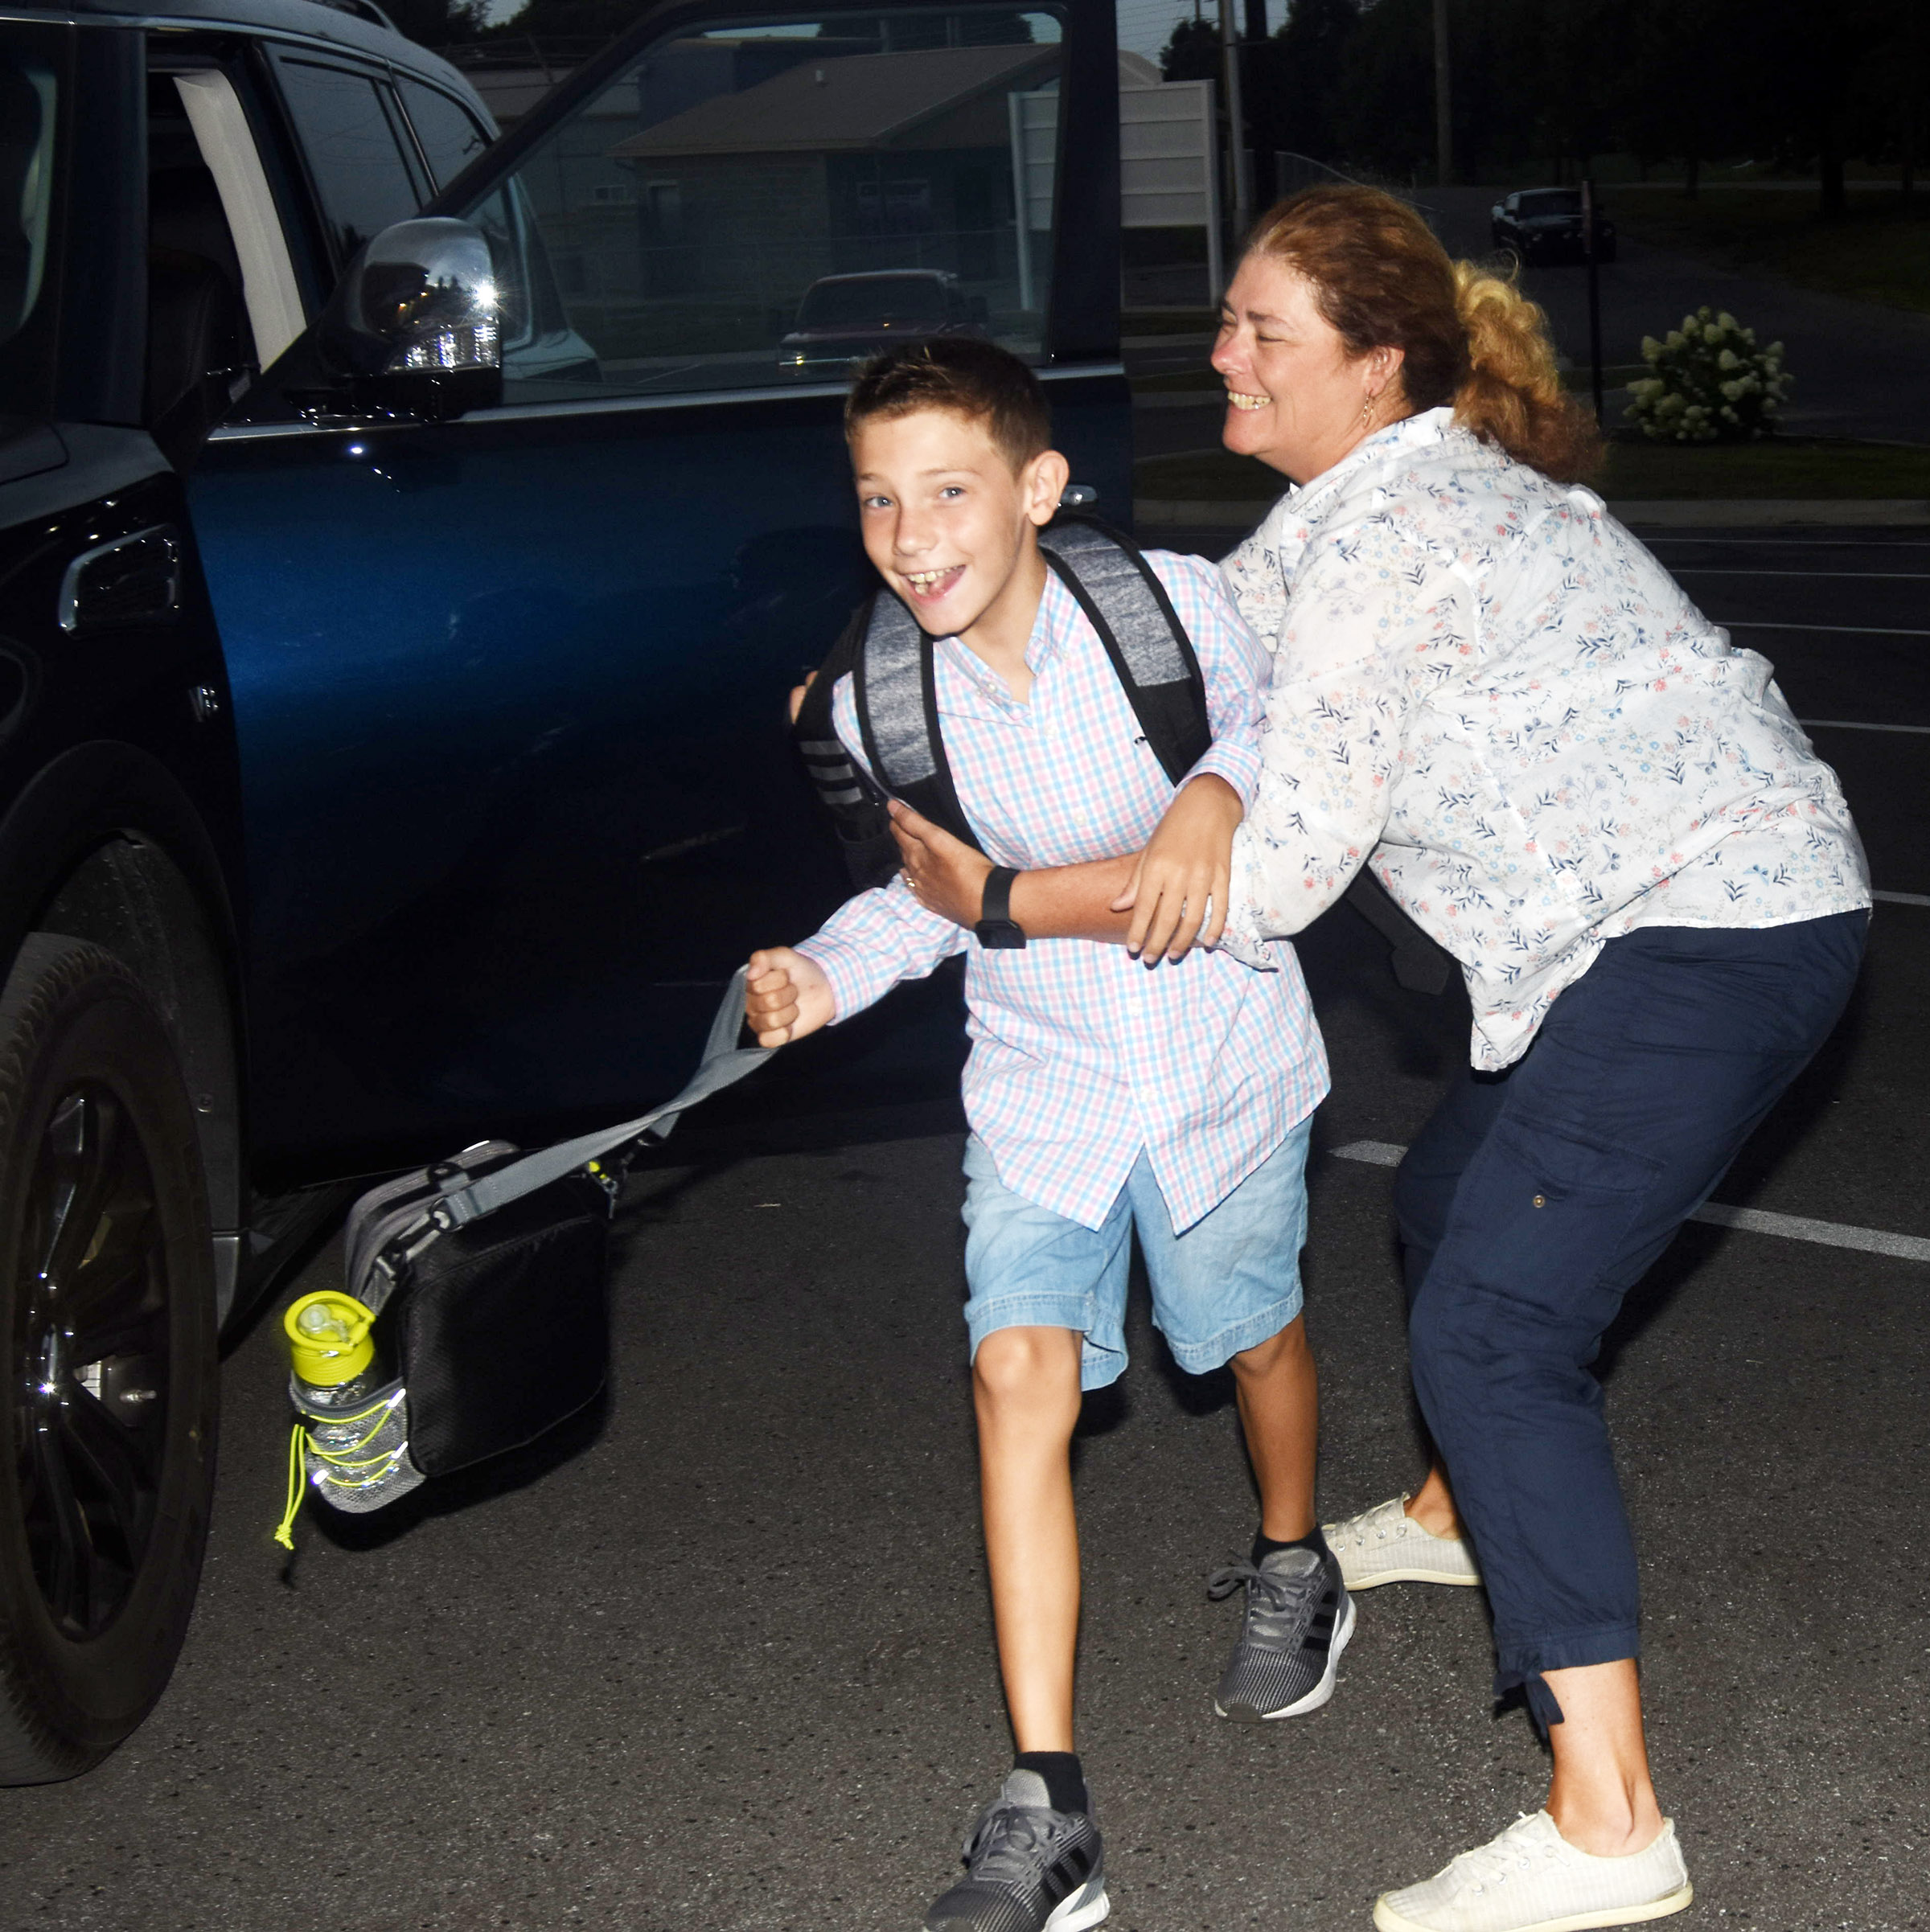 Campbellsville High School teacher Tammy Wilson grabs her son Aidan, a fourth-grader at Campbellsville Elementary School, for a hug as she drops him off for the first day of school.